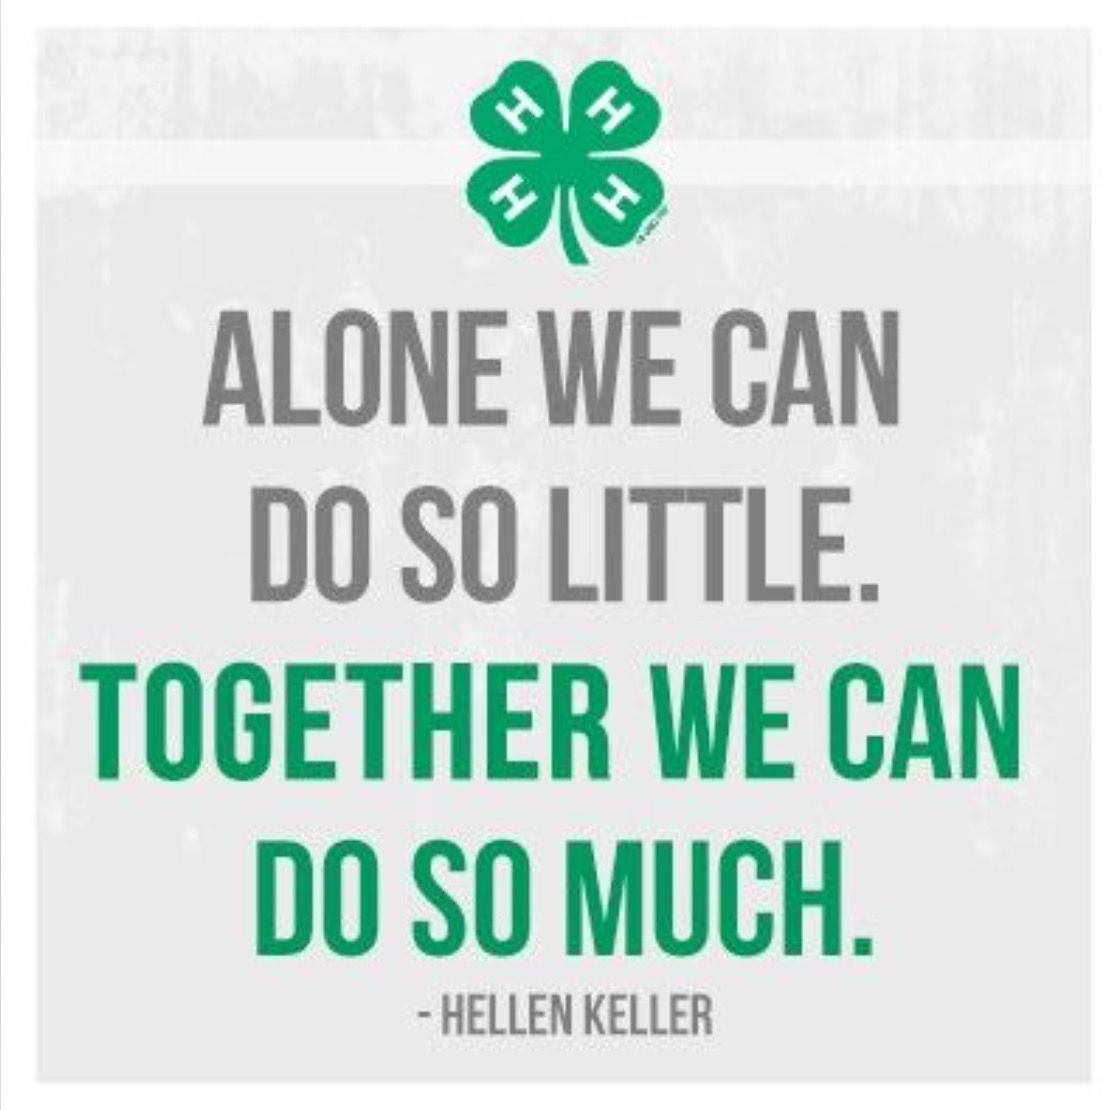 4 H Quotes Pinjennifer Buttery Freeburg On Stall Decorating Social Media